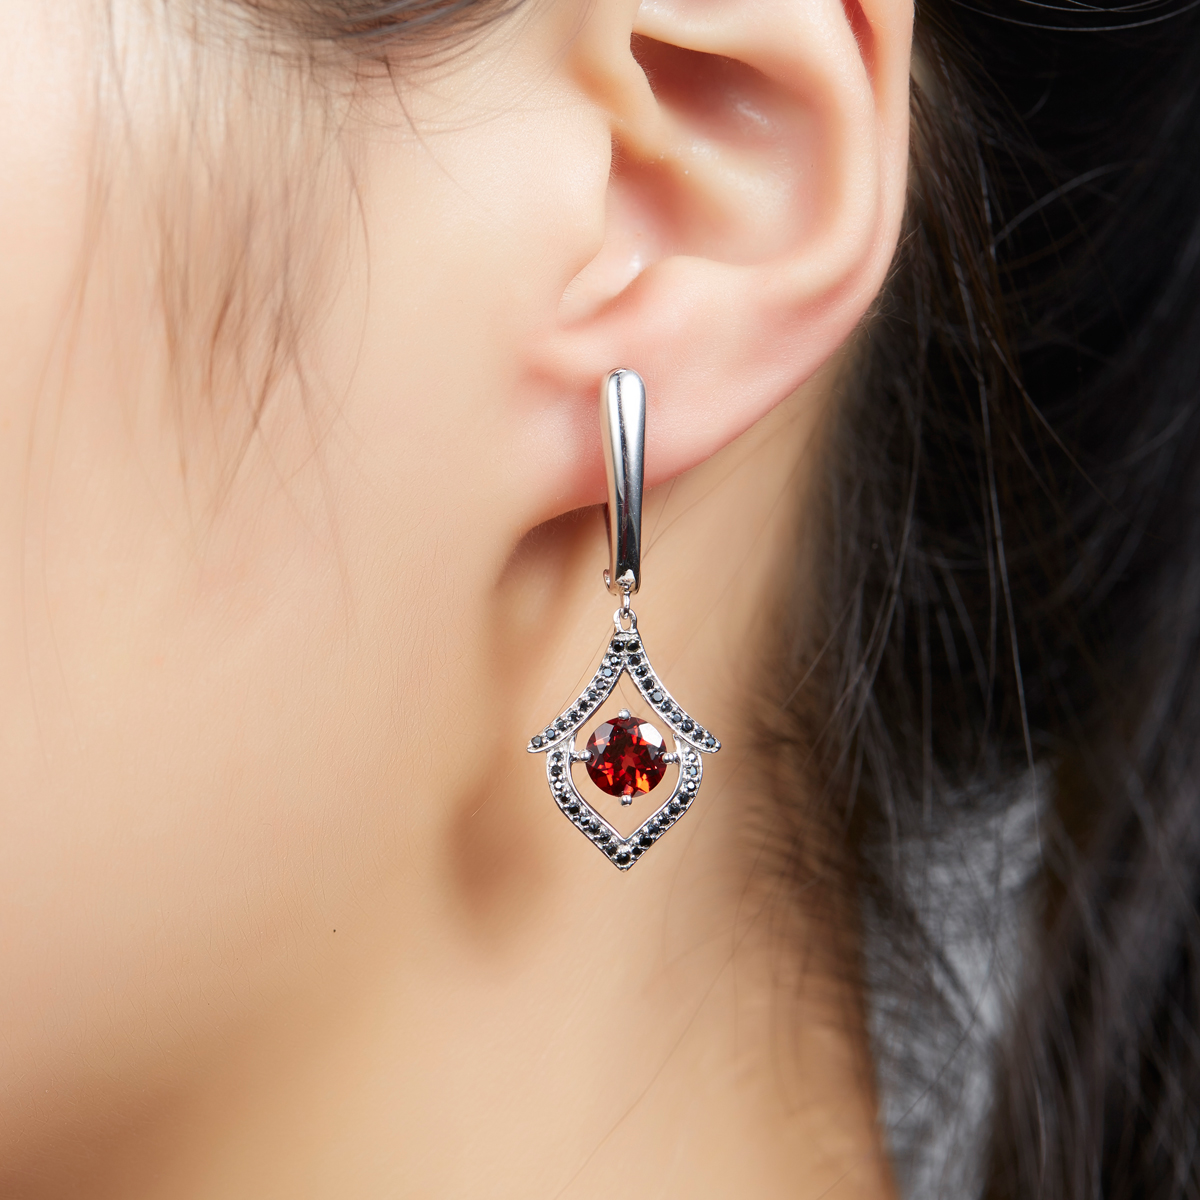 Hutang Vintage Natural Red Garnet & Black Spinel Dangle Earrings Solid 925 Sterling Silver Gemstone Fine Jewelry Women Gift